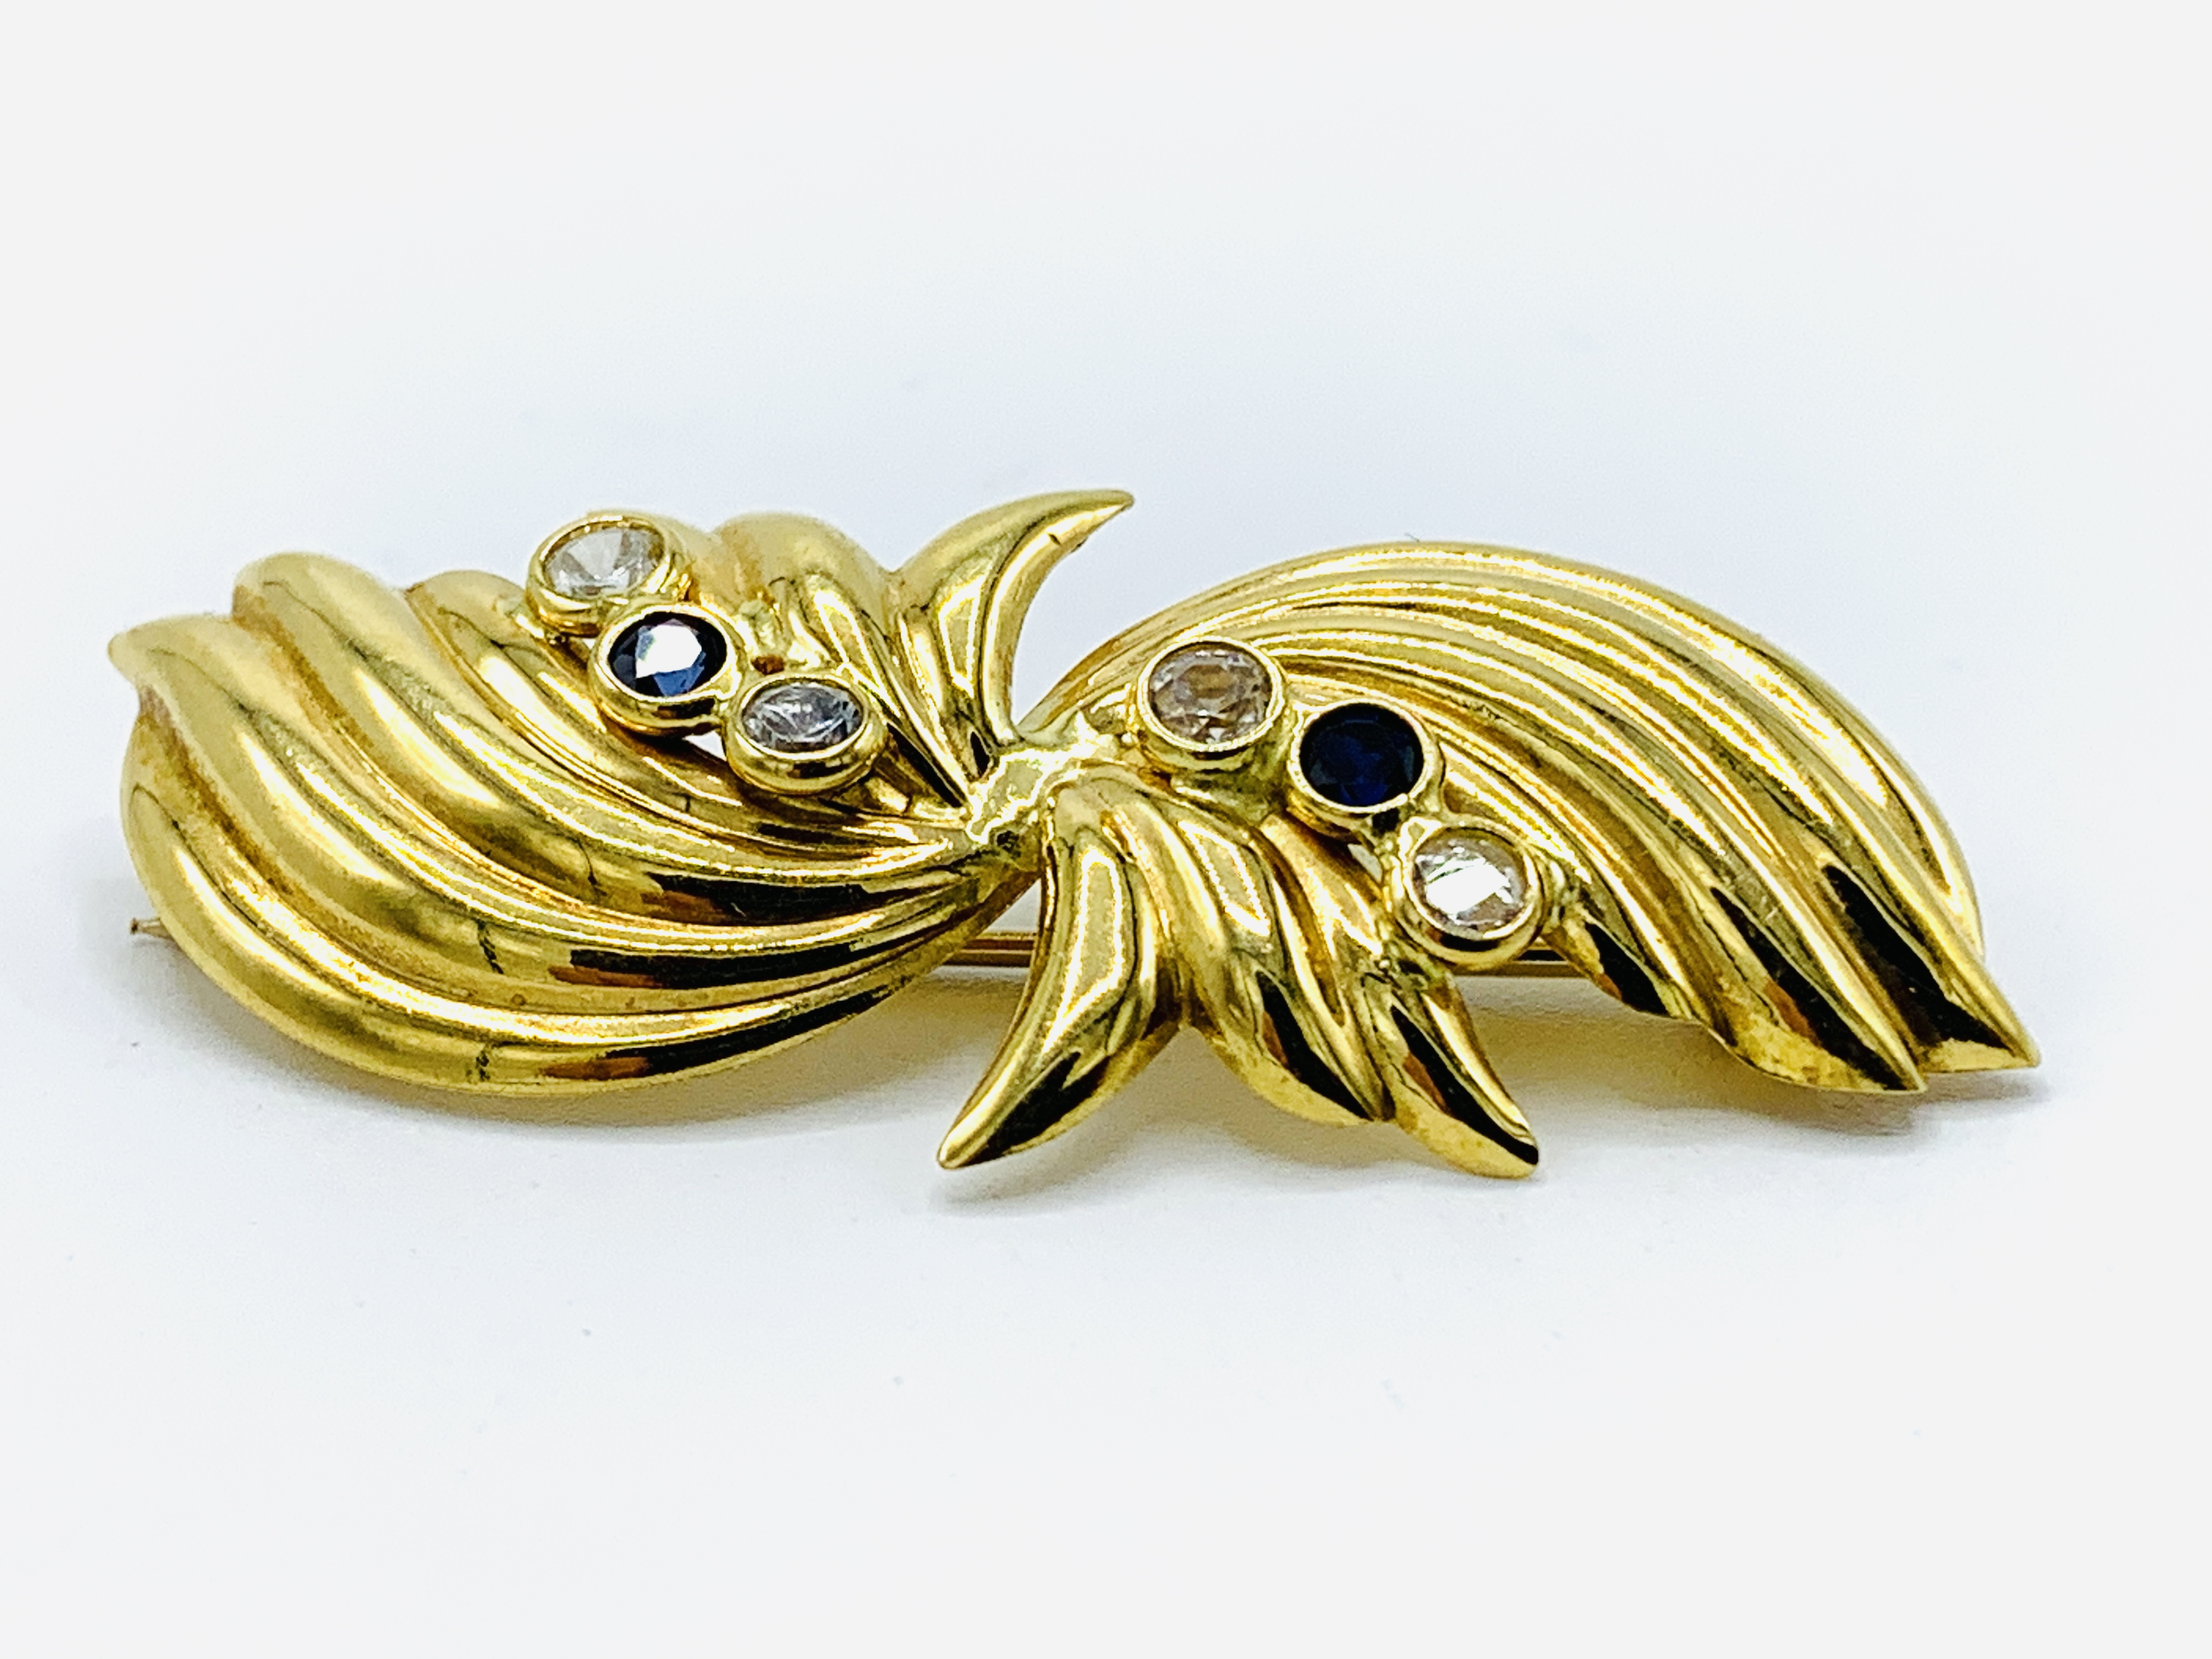 Contemporary Italian bow design 18ct gold brooch - Image 2 of 5